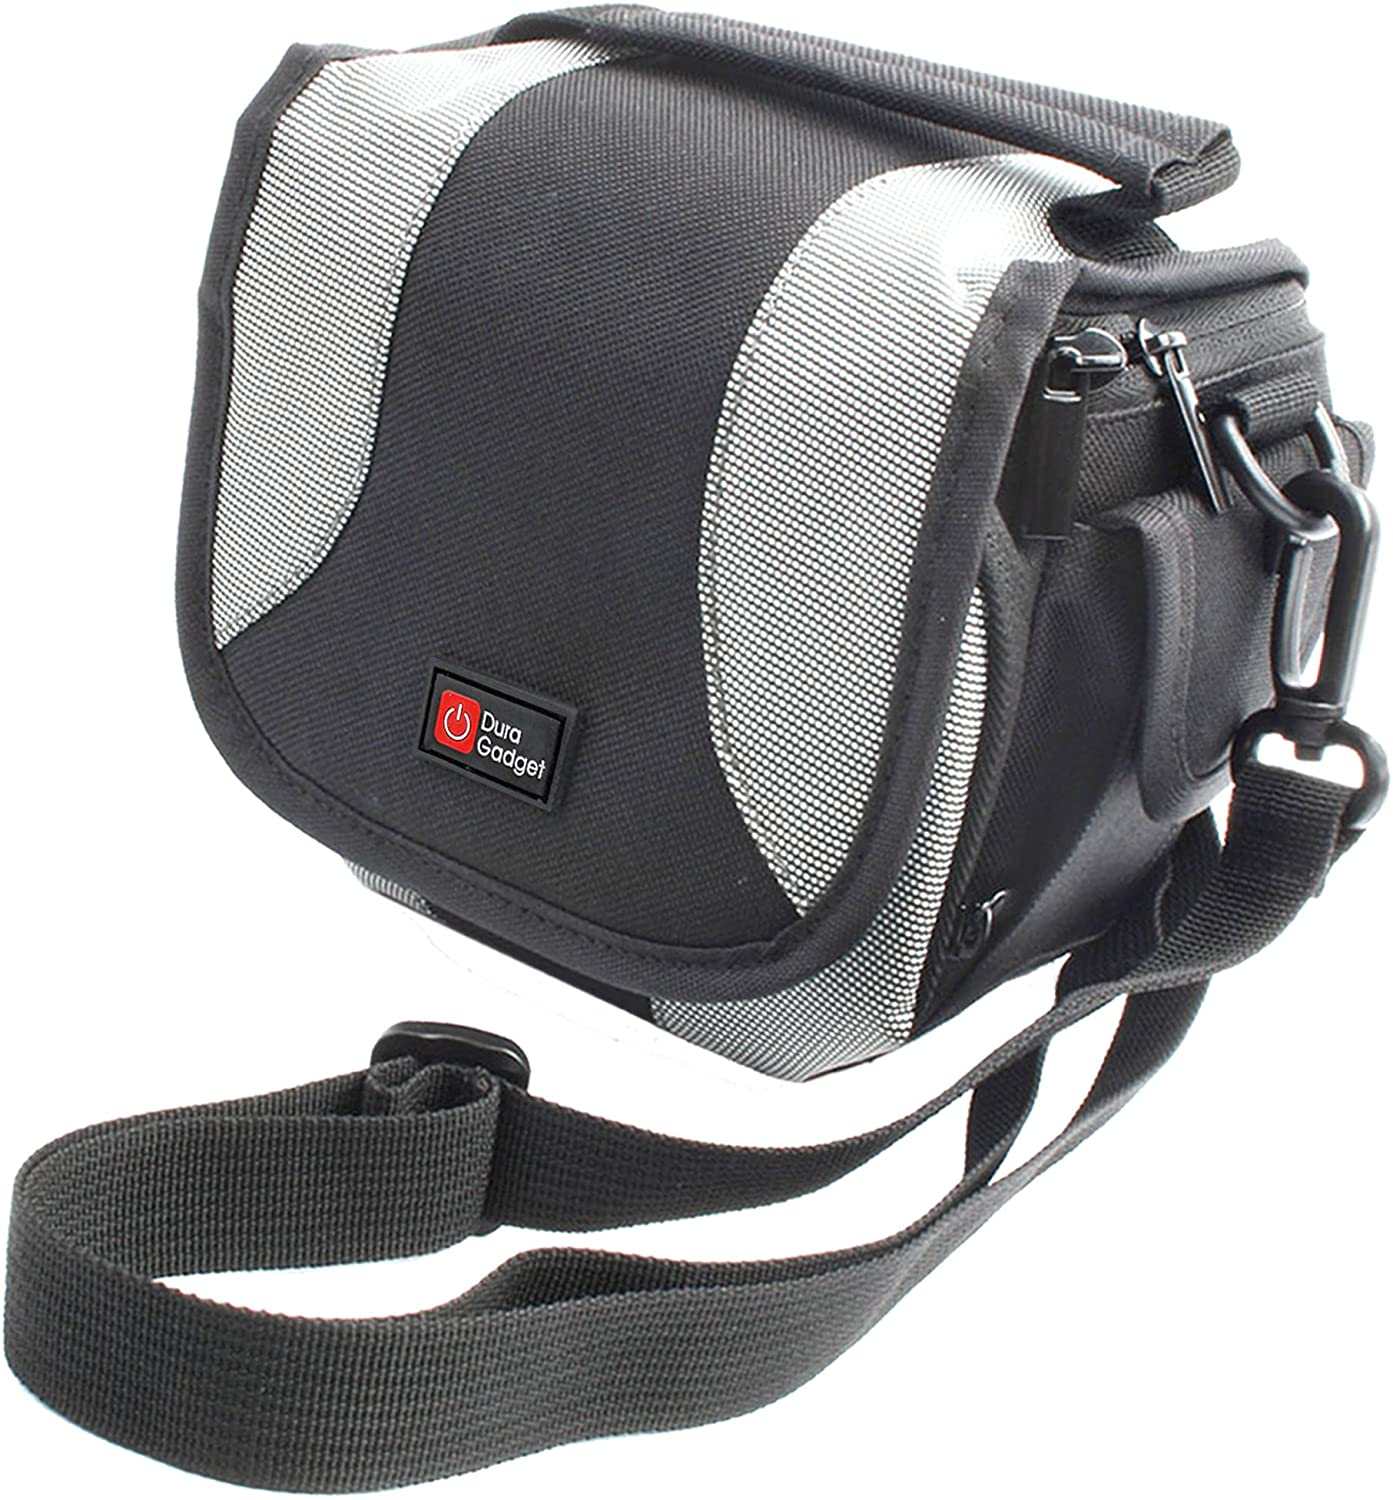 DURAGADGET Portable Carry Case w/Padded Interior & Shoulder Strap - Compatible with Garmin Virb 360